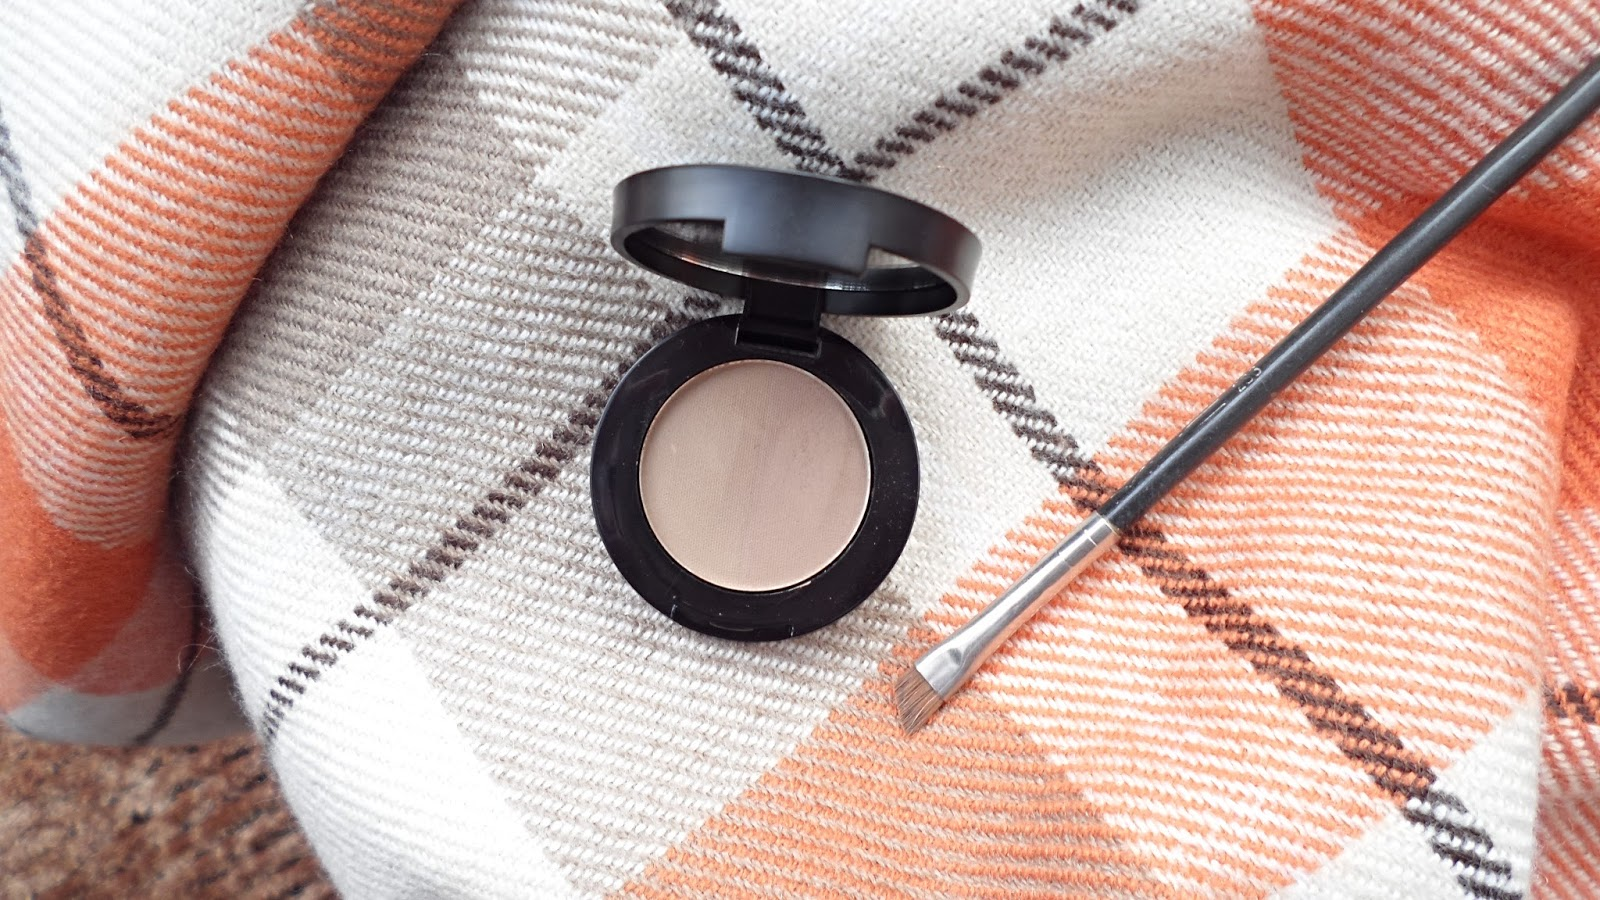 Freedom Duo Brow Powder Taupe Deliciously Floral